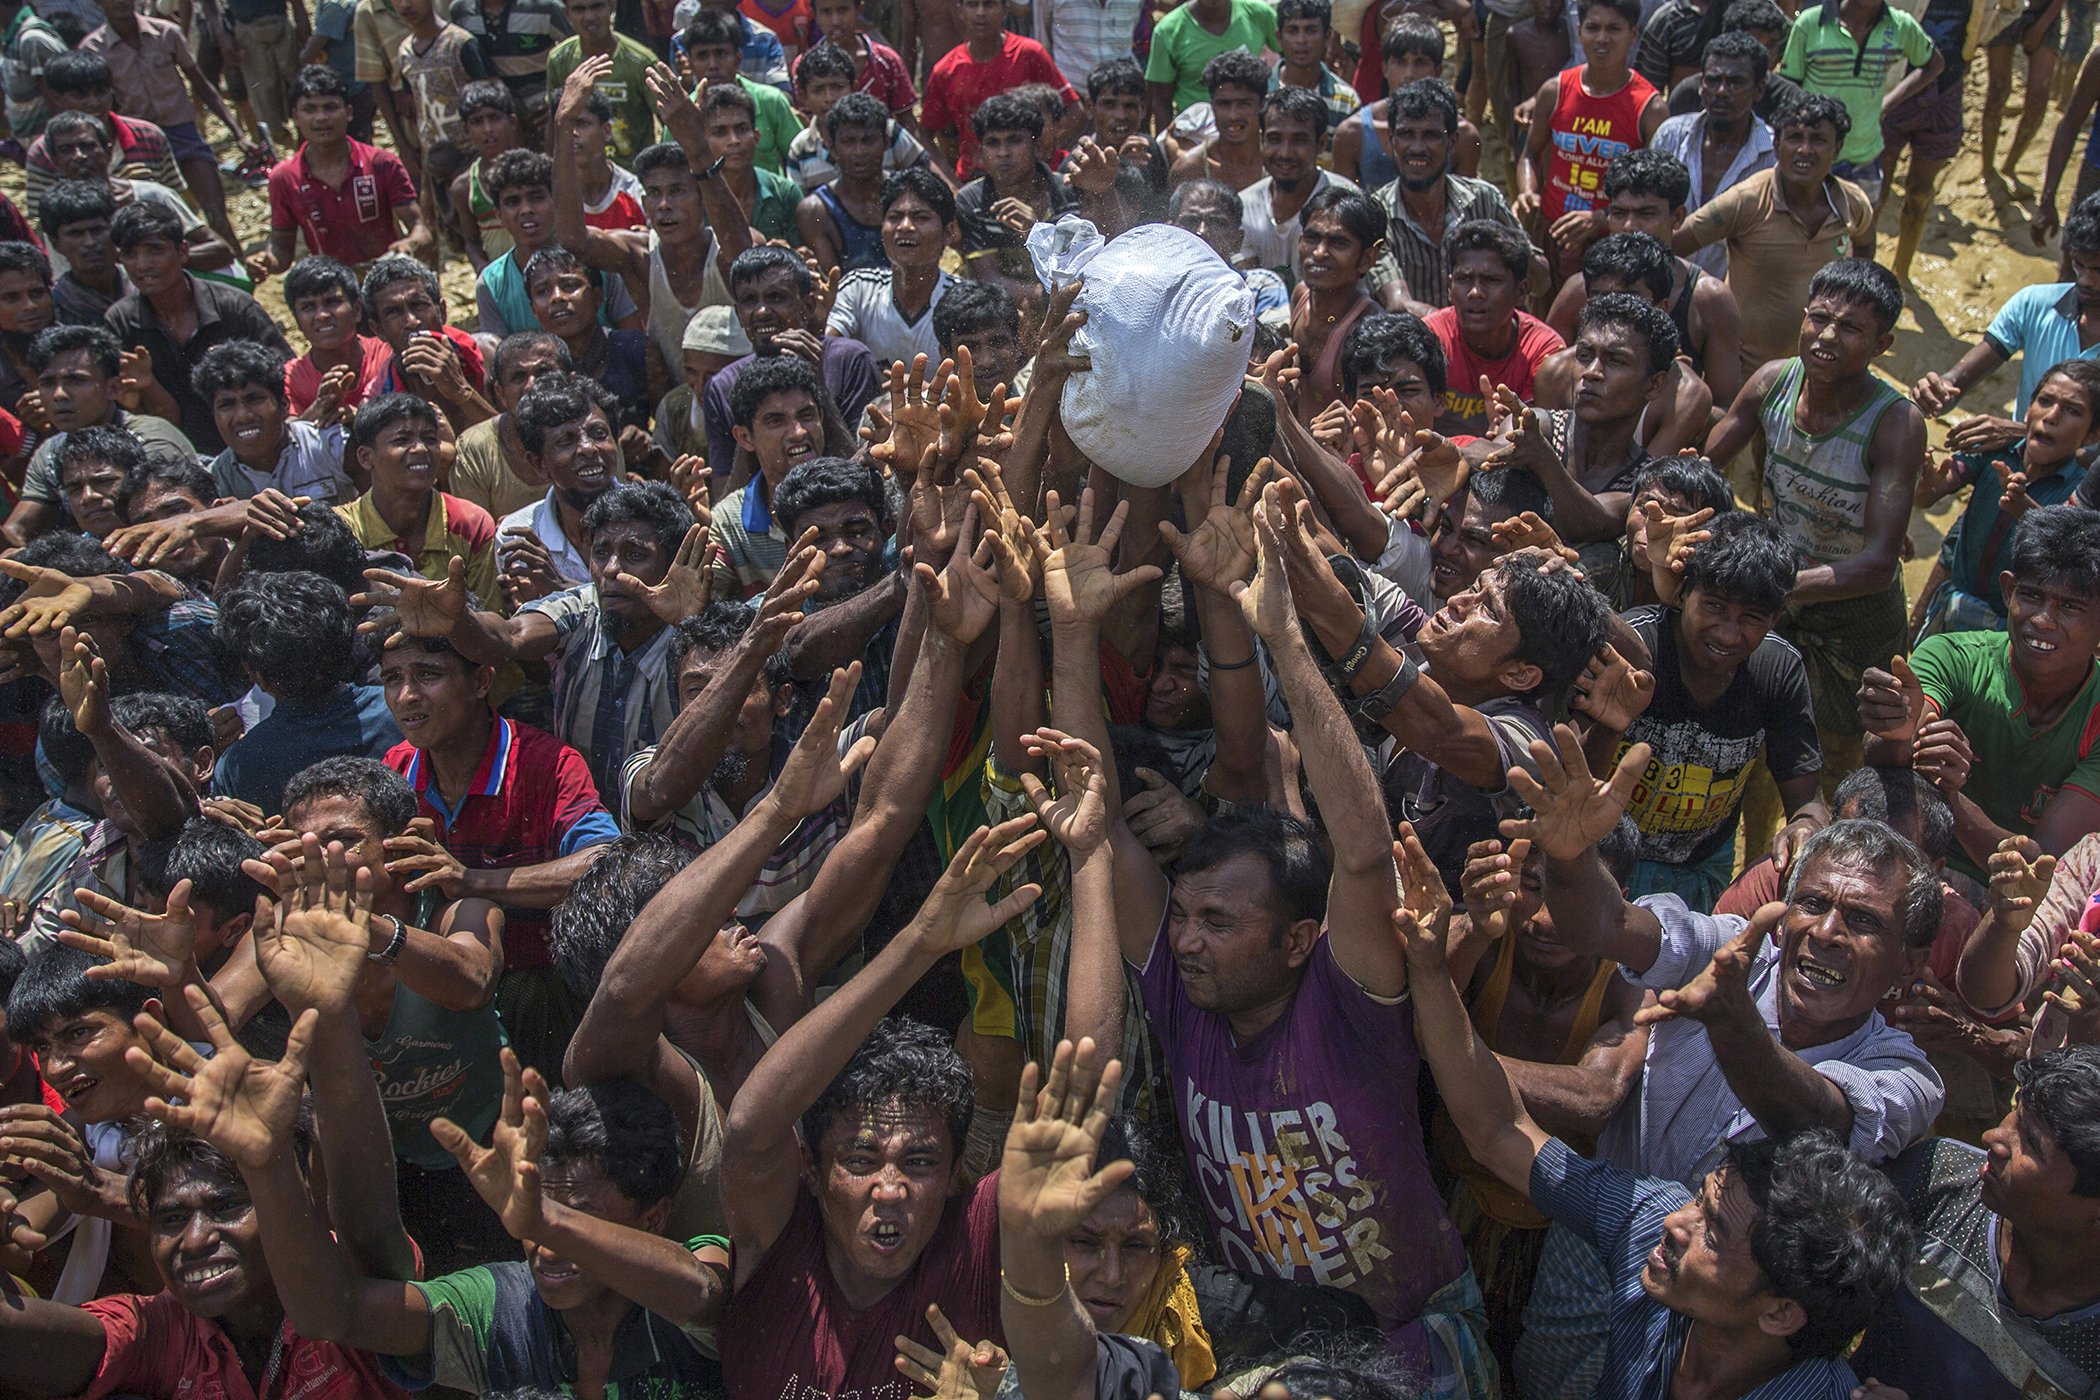 2017-Year-In-Photos-Rohingya-Refugees-17.jpg